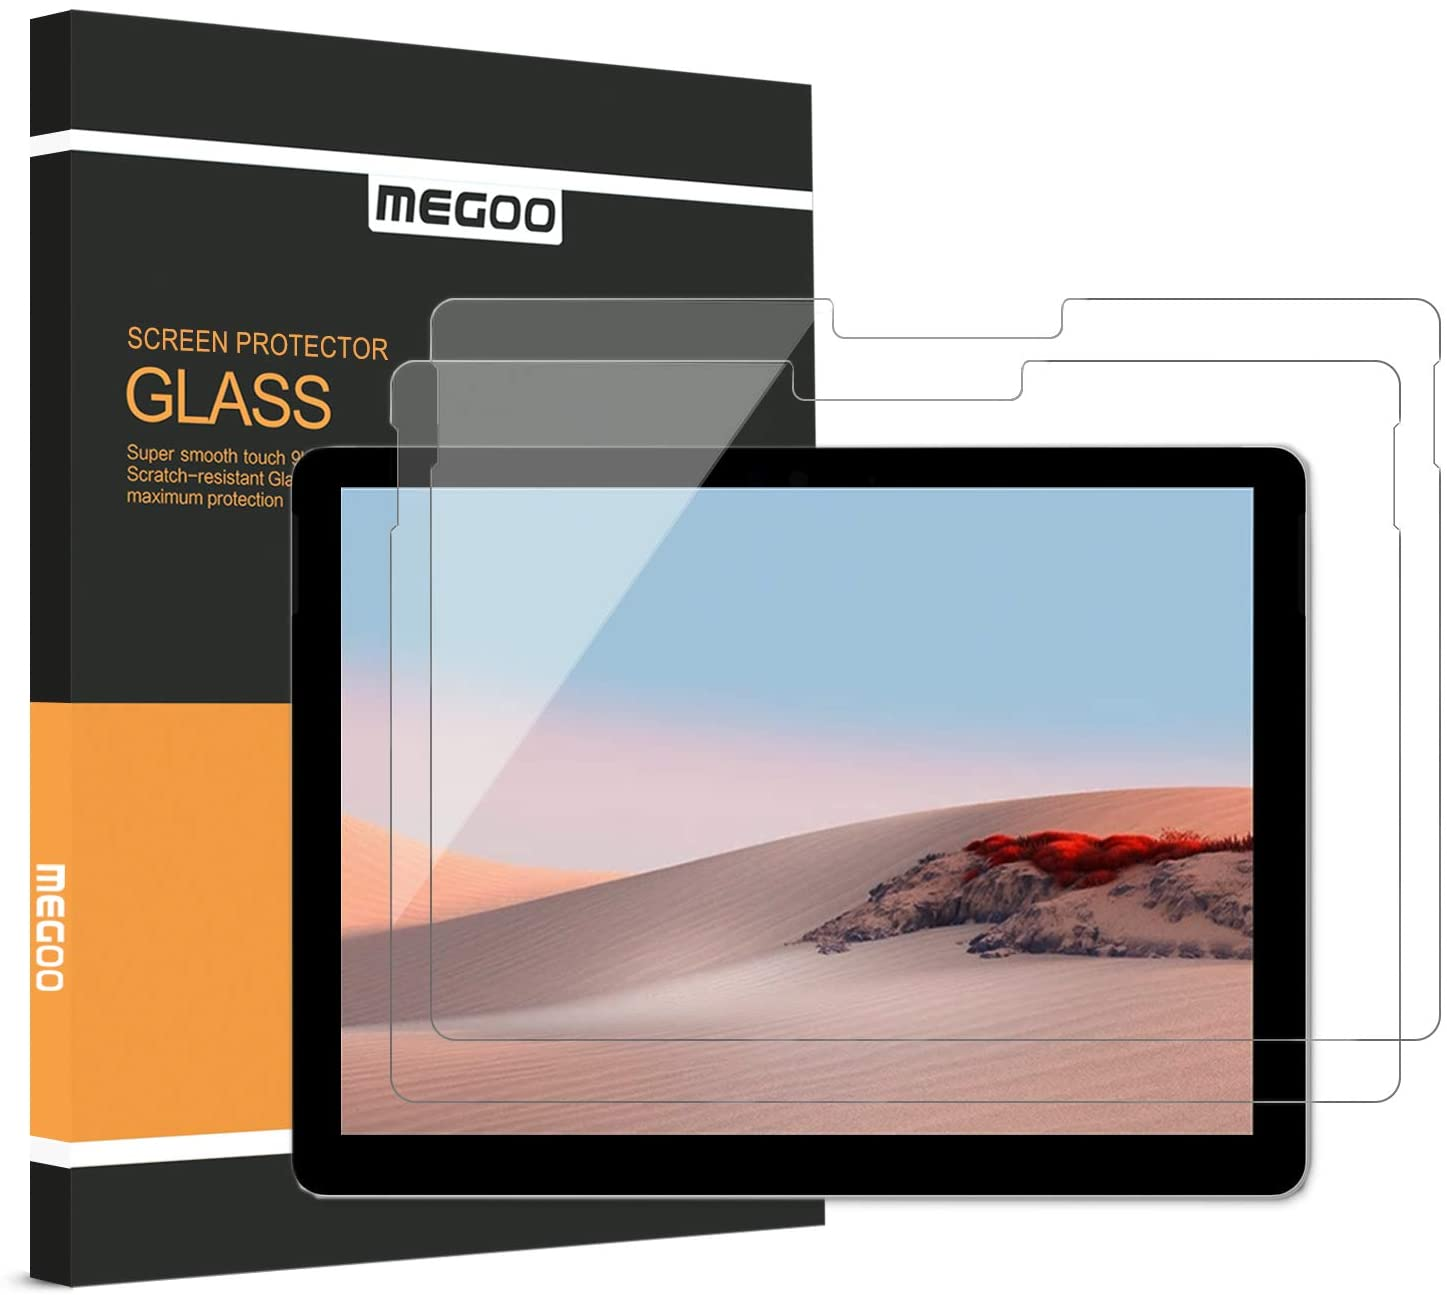 [2 Pack] MEGOO Screen Protector for Surface Go 1/2 (10.5 Inch), Tempered Glass/Easy Installation/High Sensitive/Full Protection, Designed for Microsoft Surface Go Gen 1 (2018) & Gen 2 (2020)